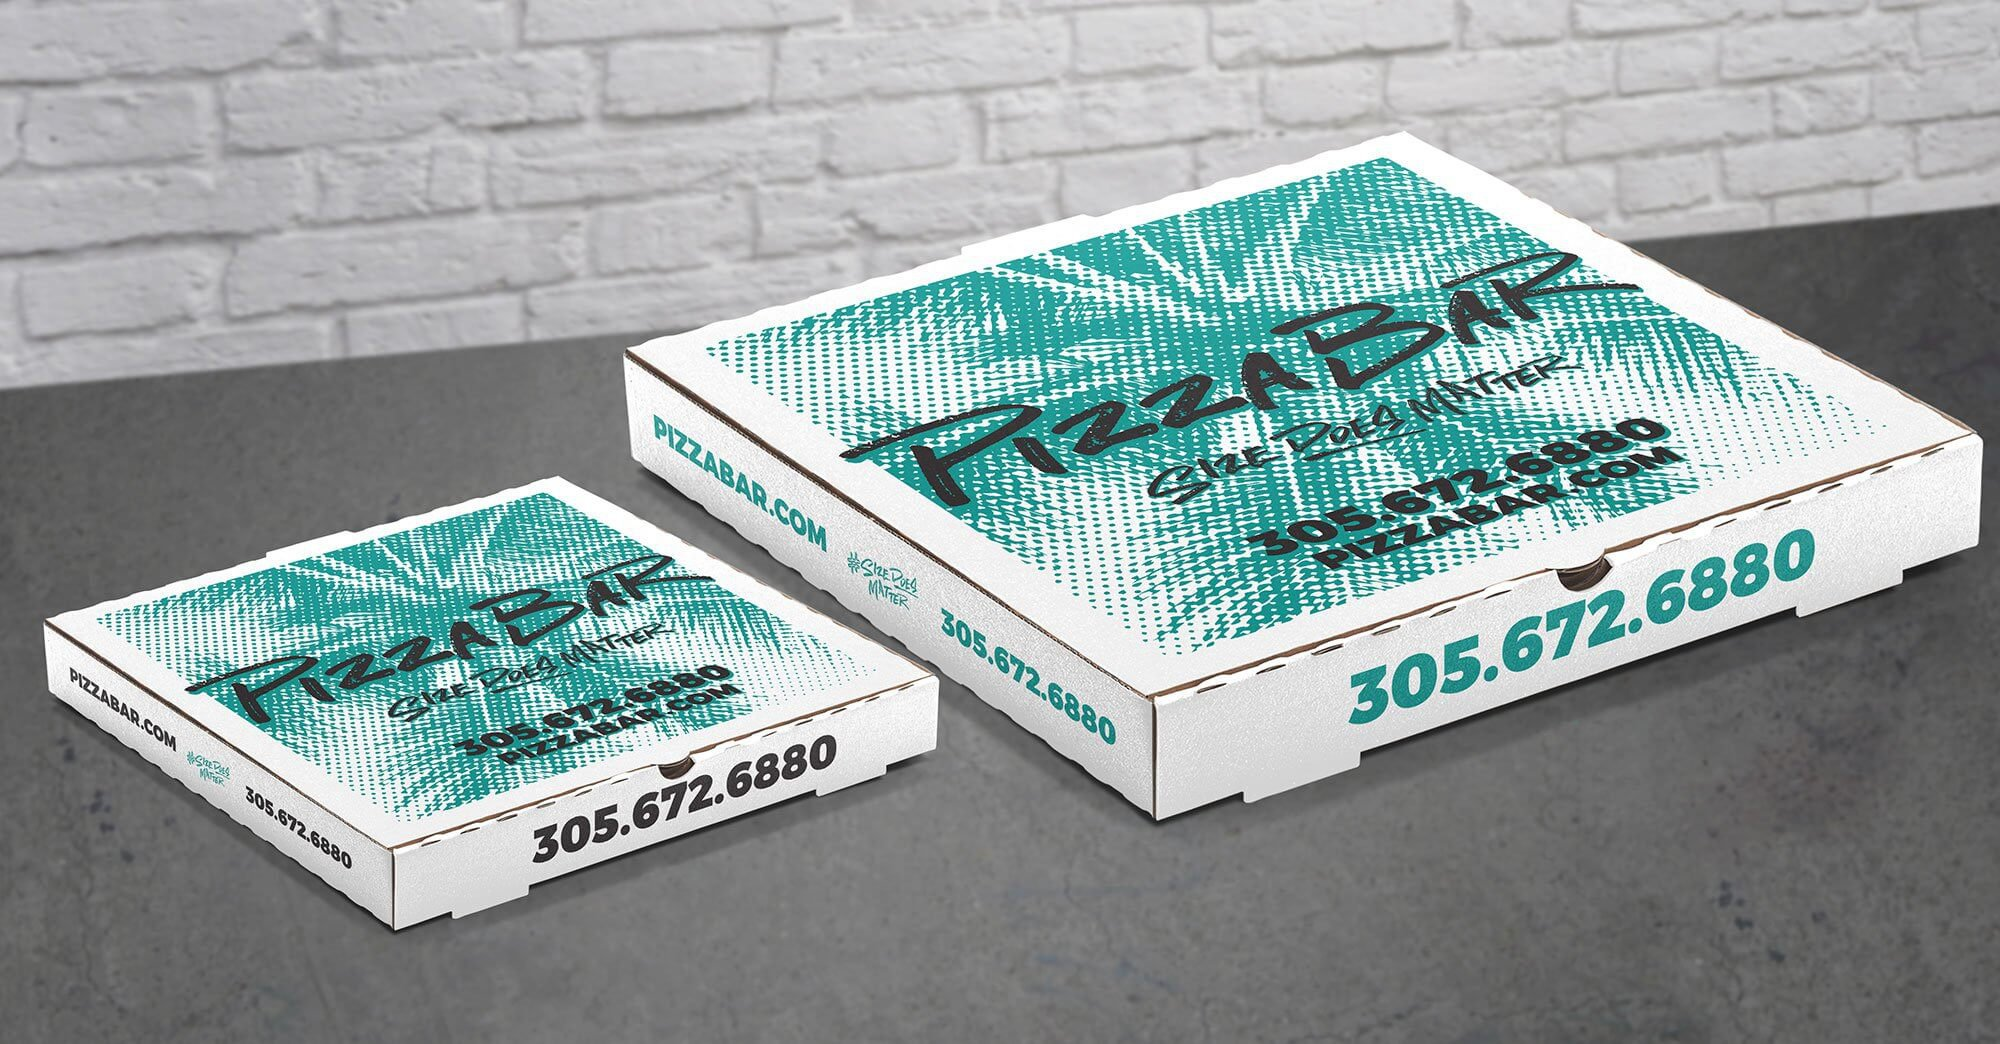 Pizza Bar branded delivery box design